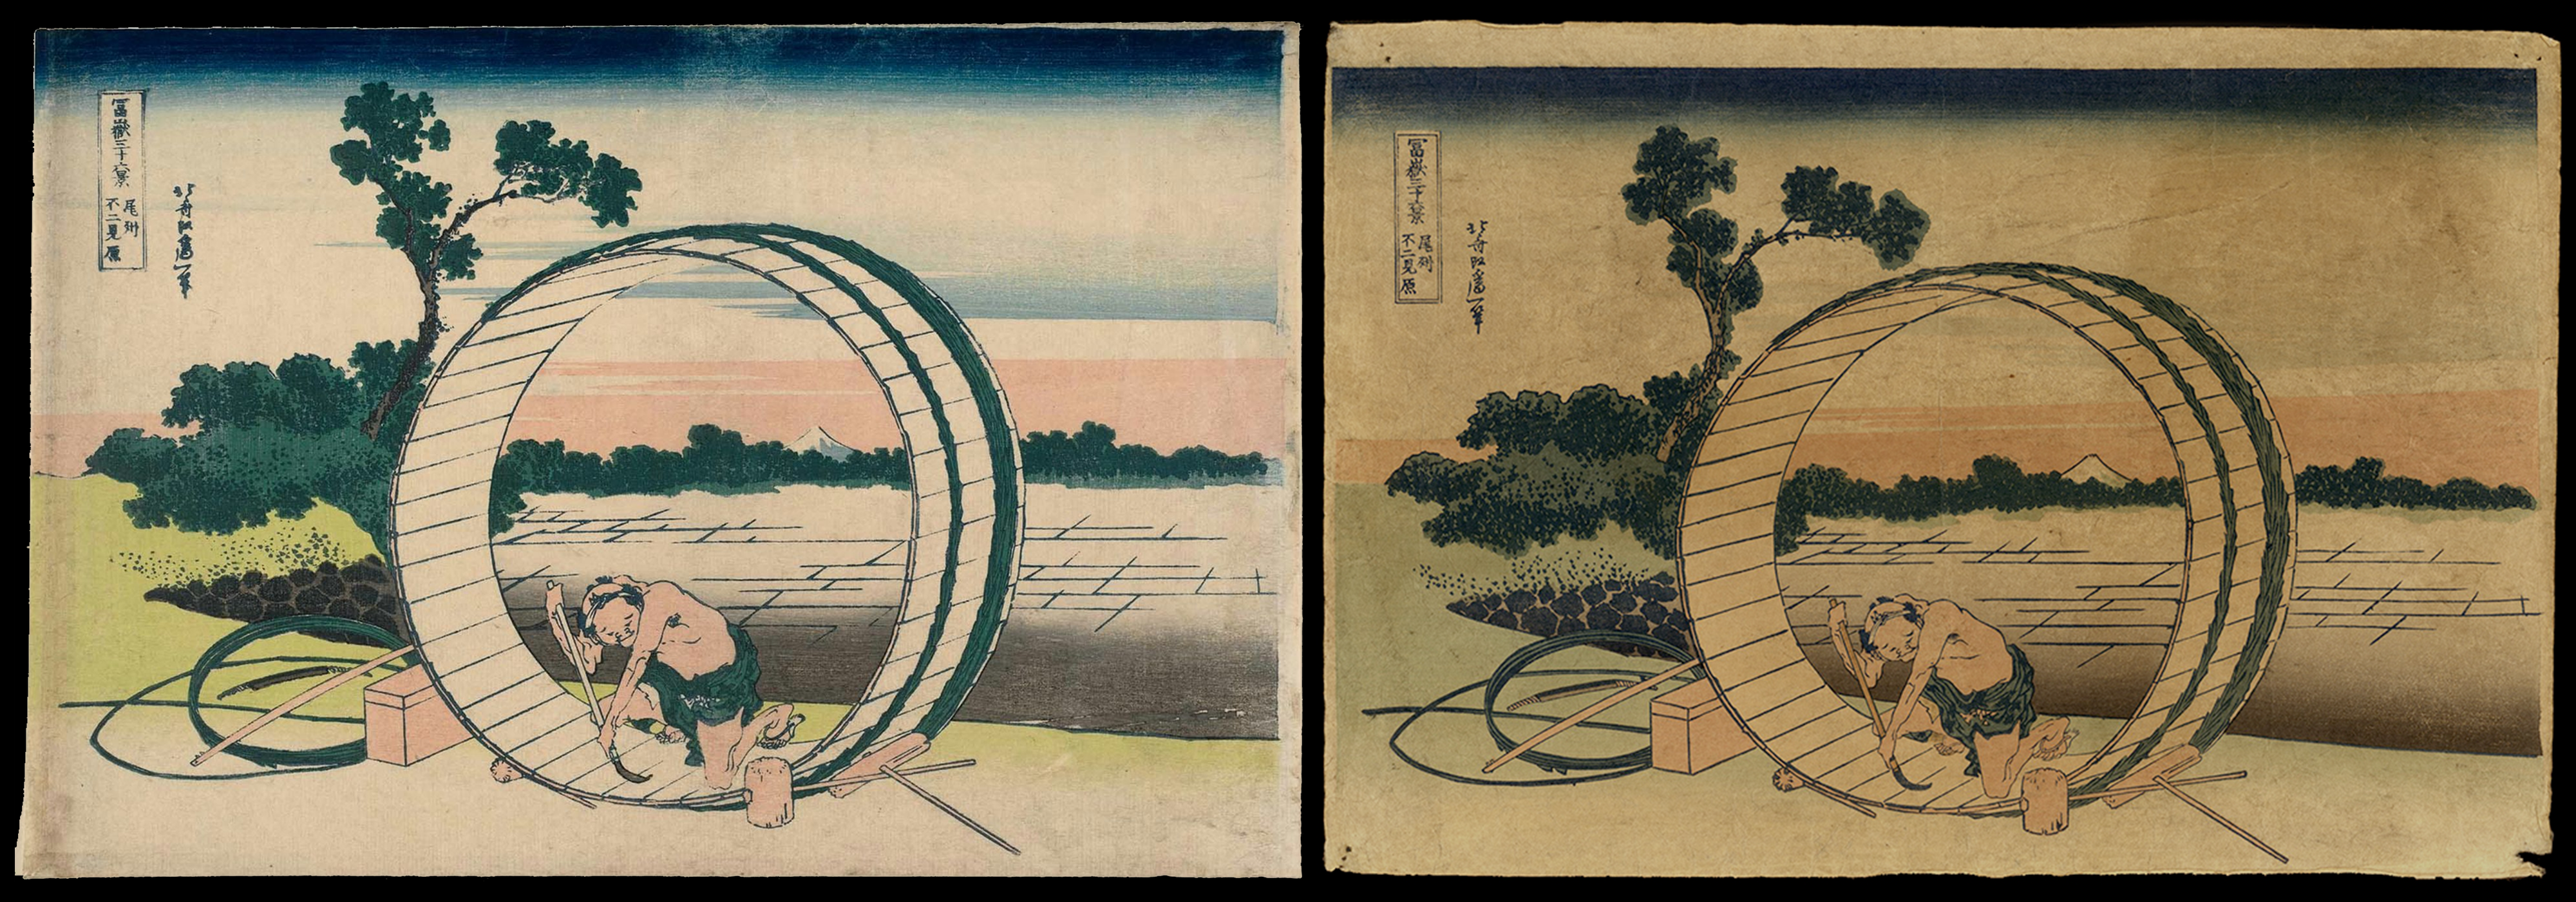 Japanese Woodblock Prints – How tell the difference between real and fake?